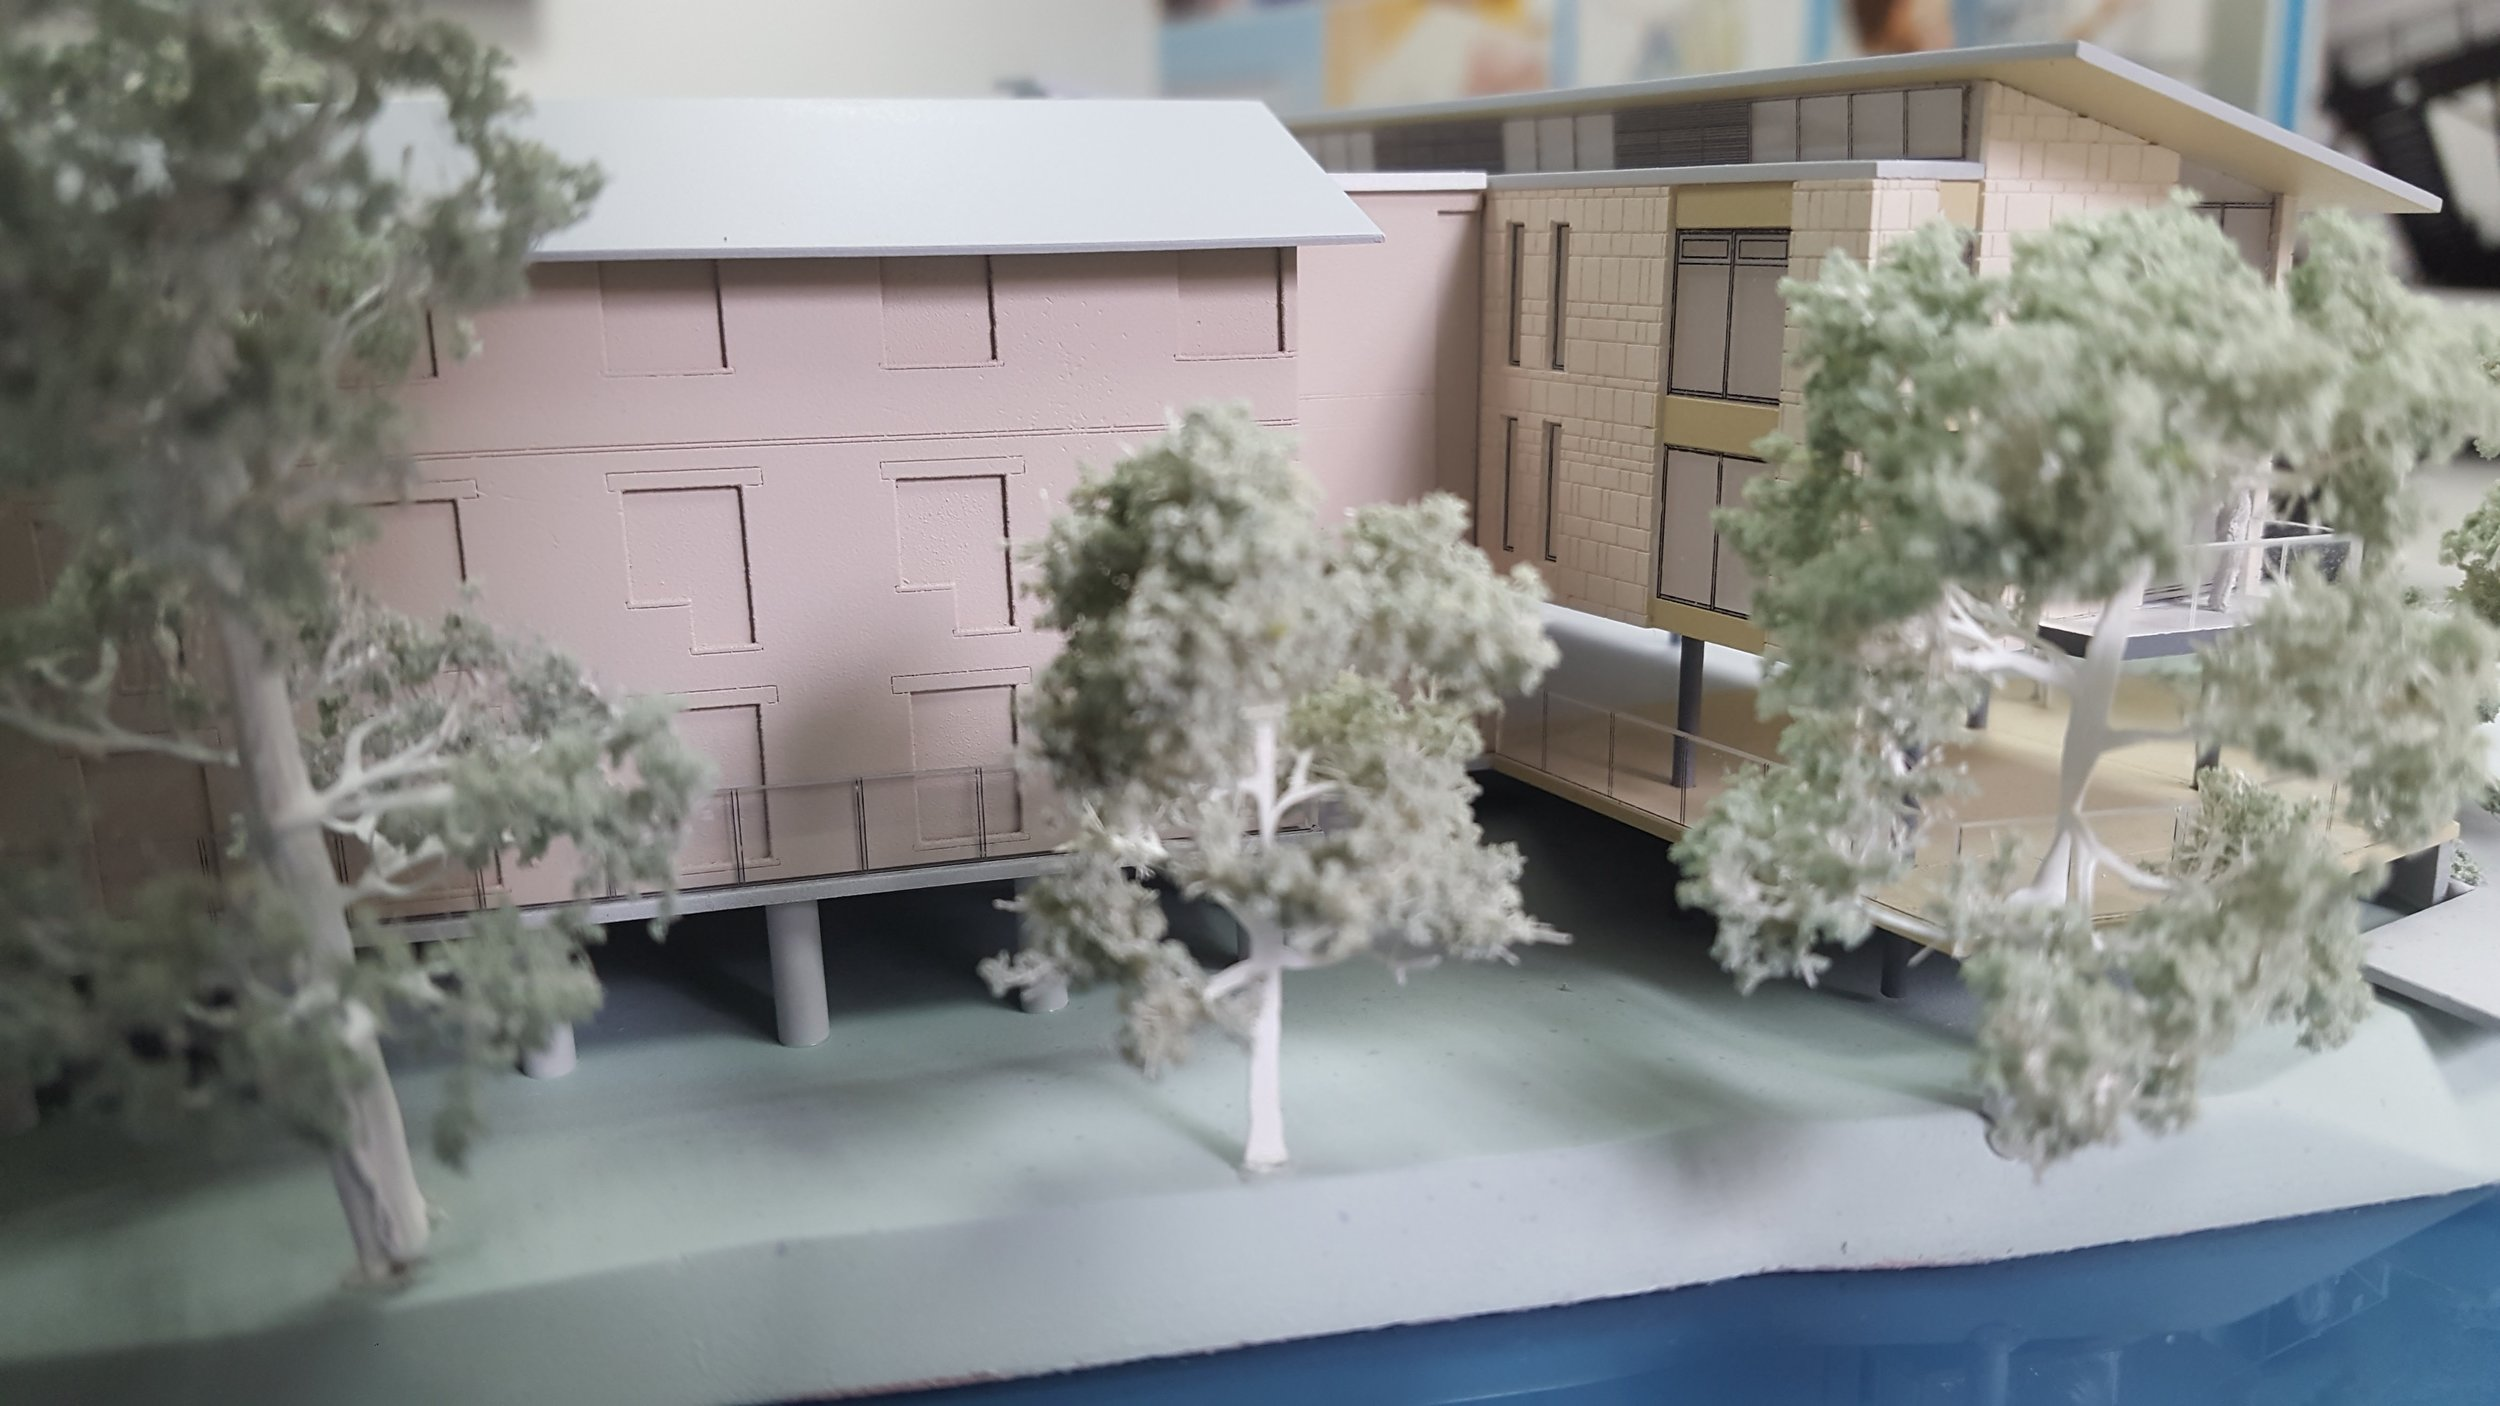 We created a model of the proposed plan for bridgemead.